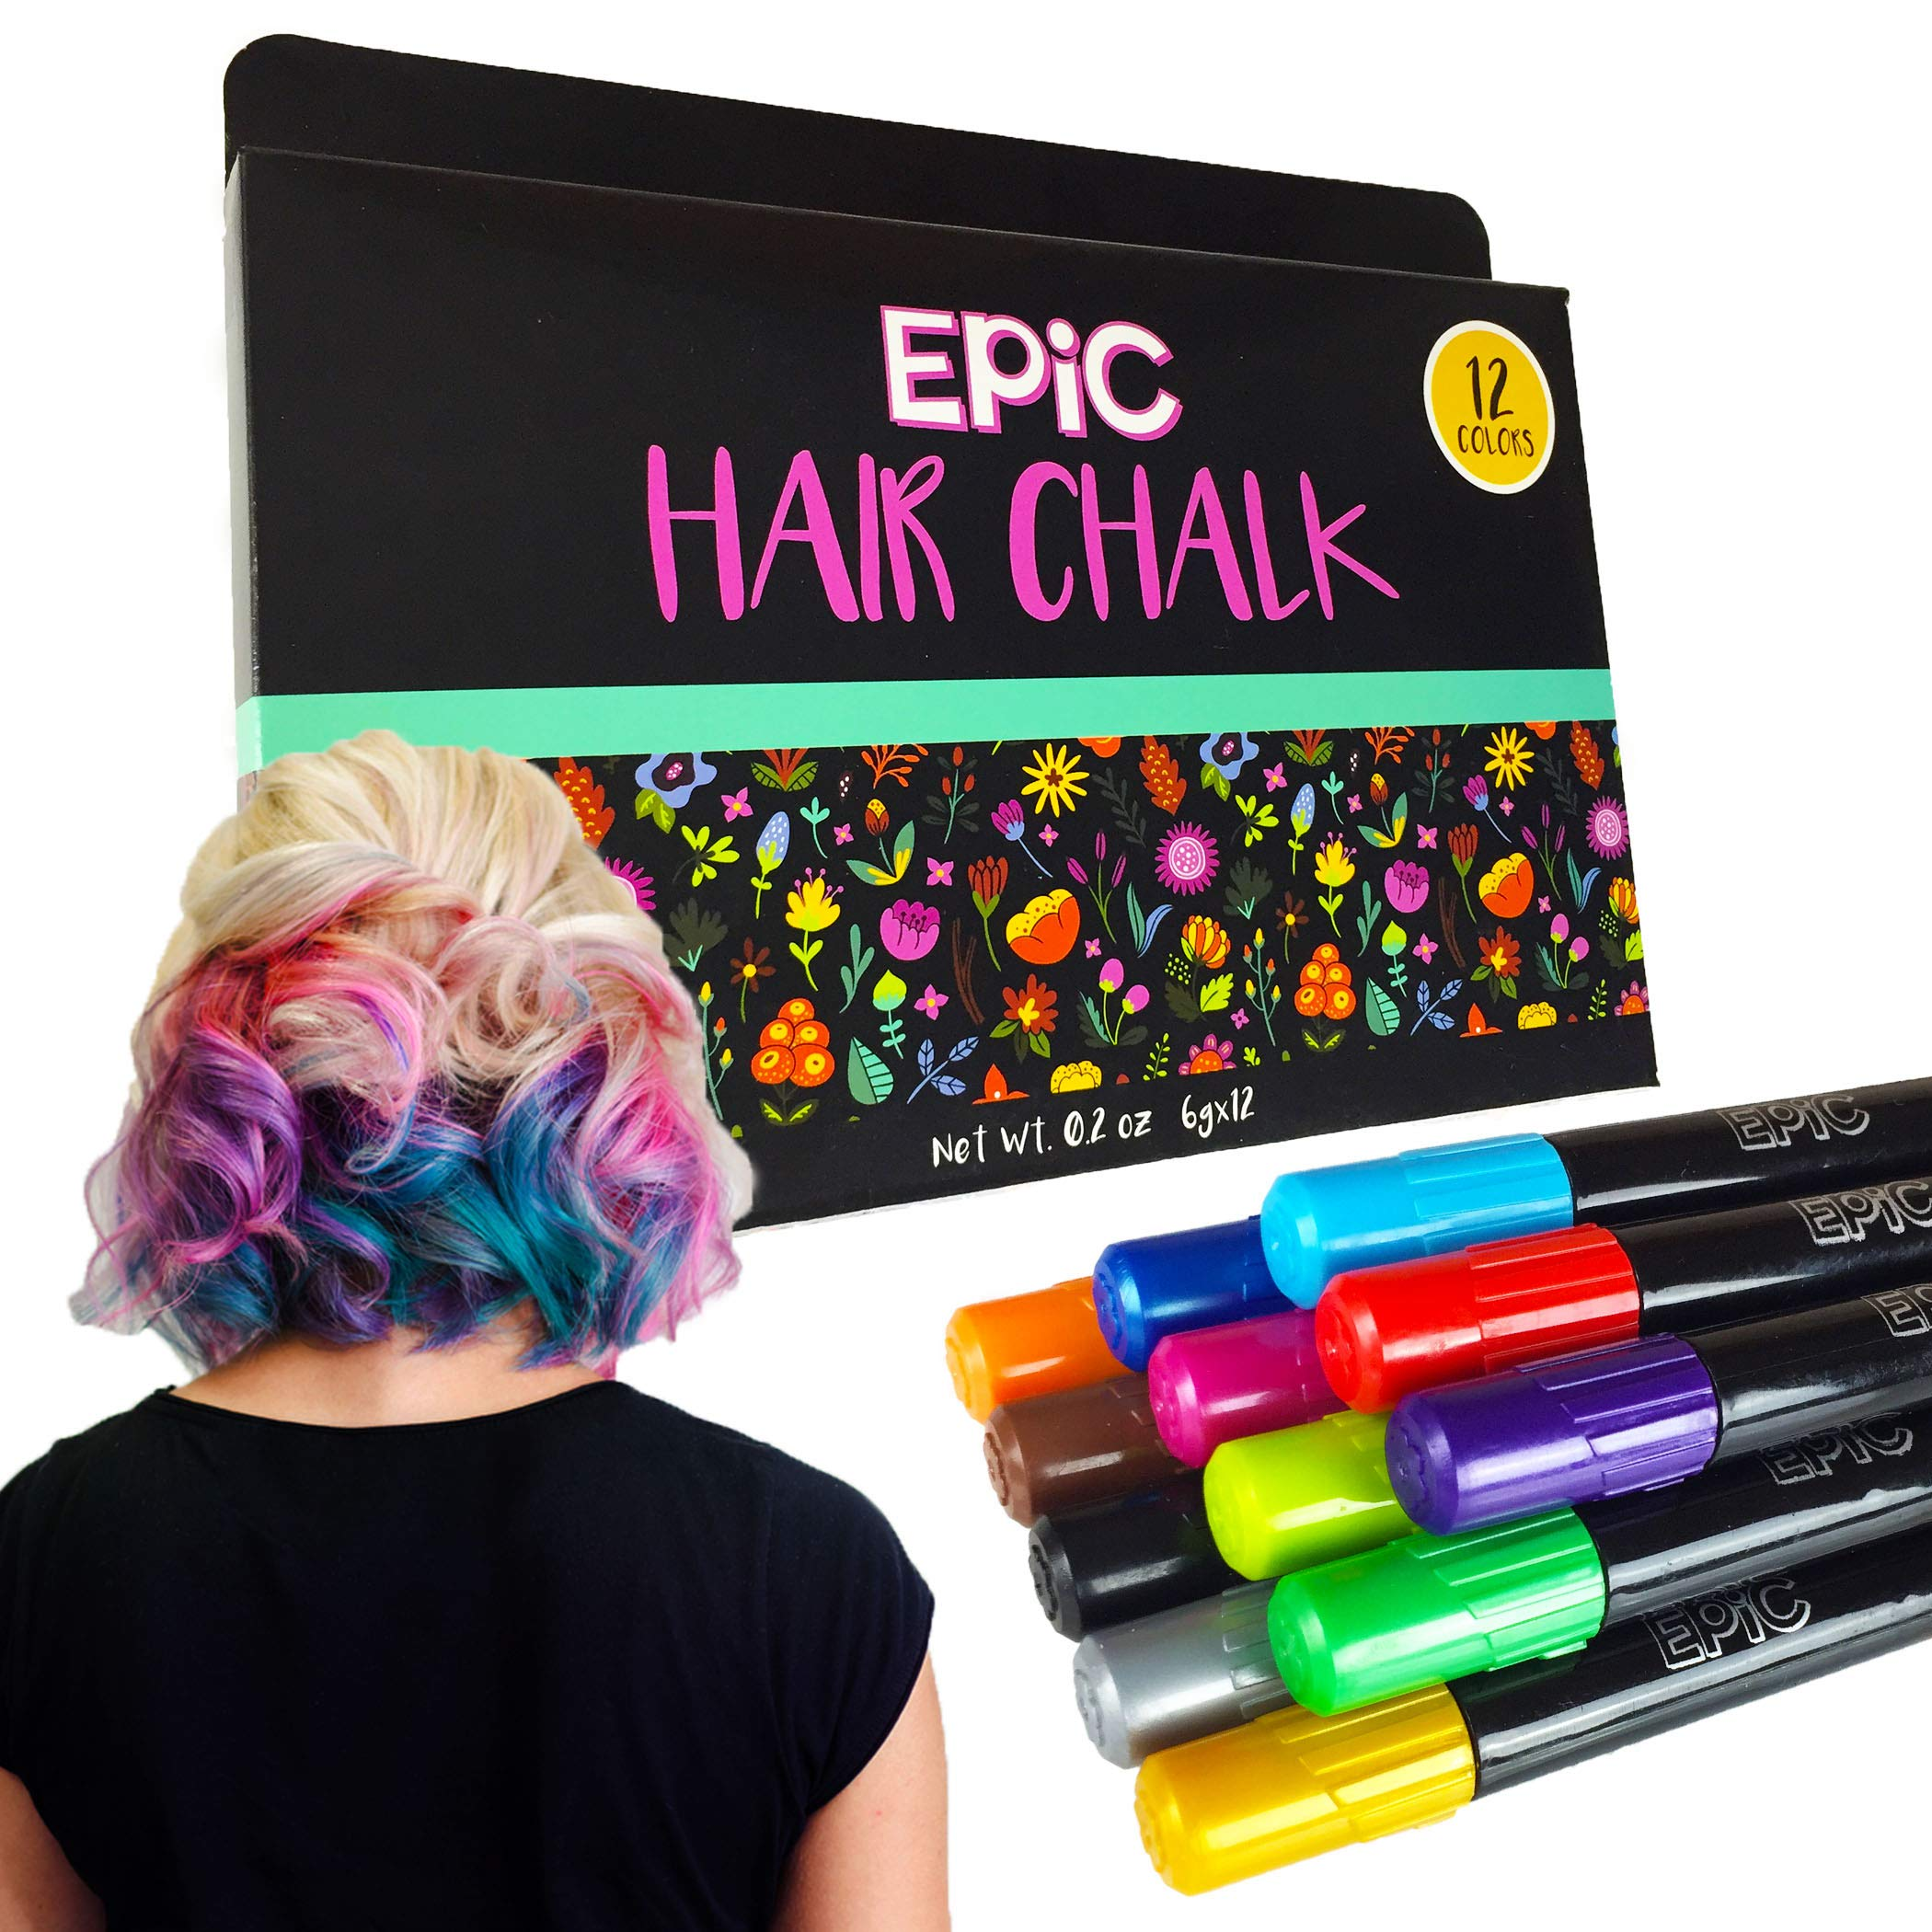 EPIC HAIR CHALK SET: 12 Colorful Chalk Pens. Temporary hair color for kids of all ages! Great for Halloween!